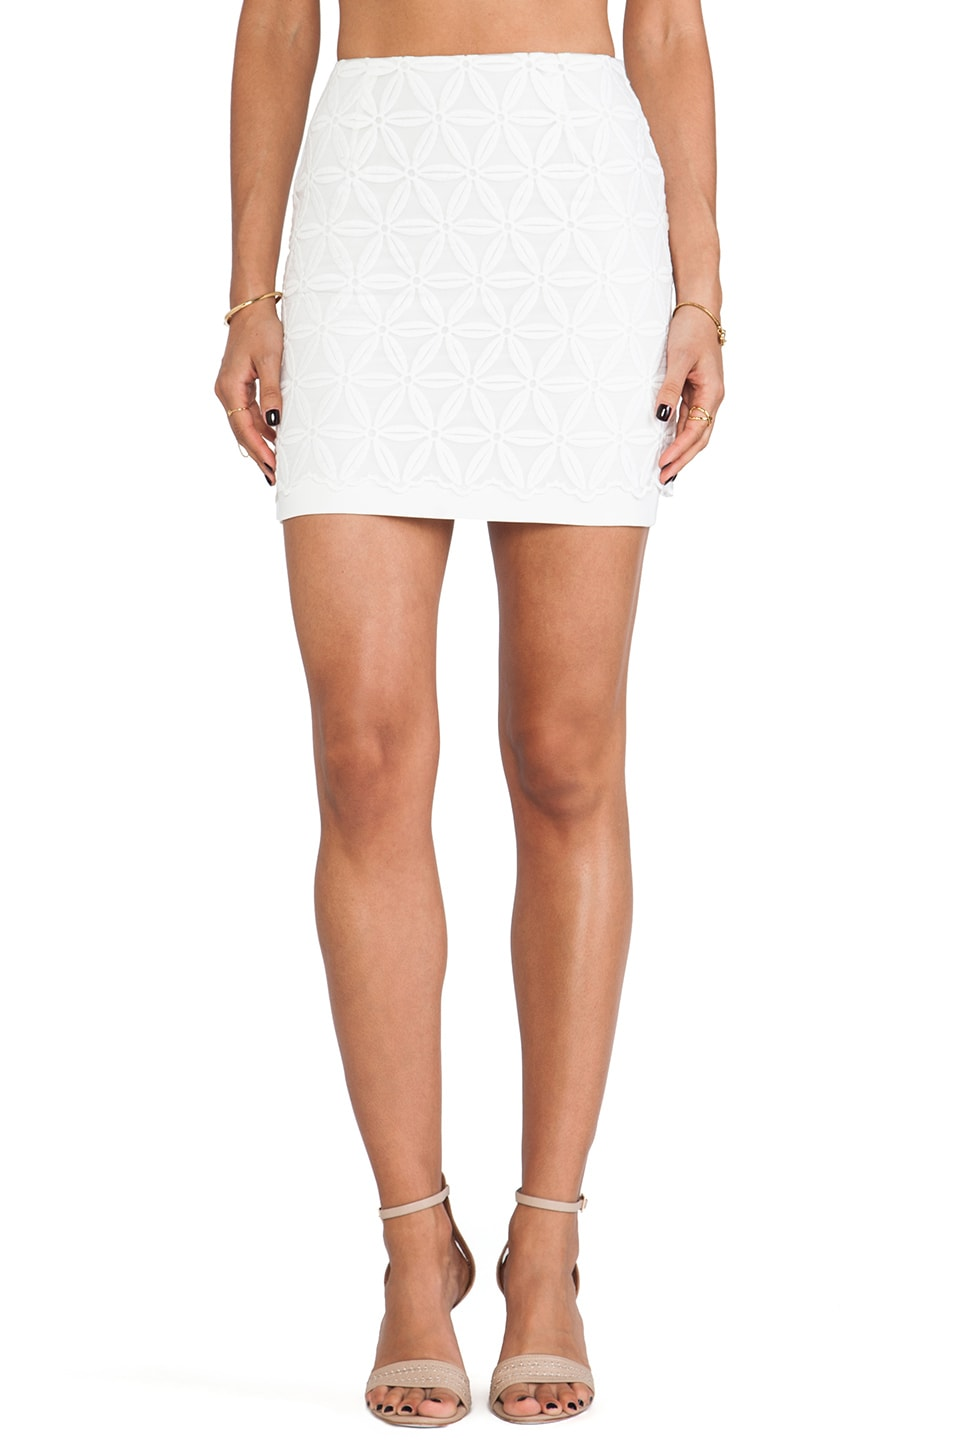 J.O.A. Organza Lace Mini Skirt in White